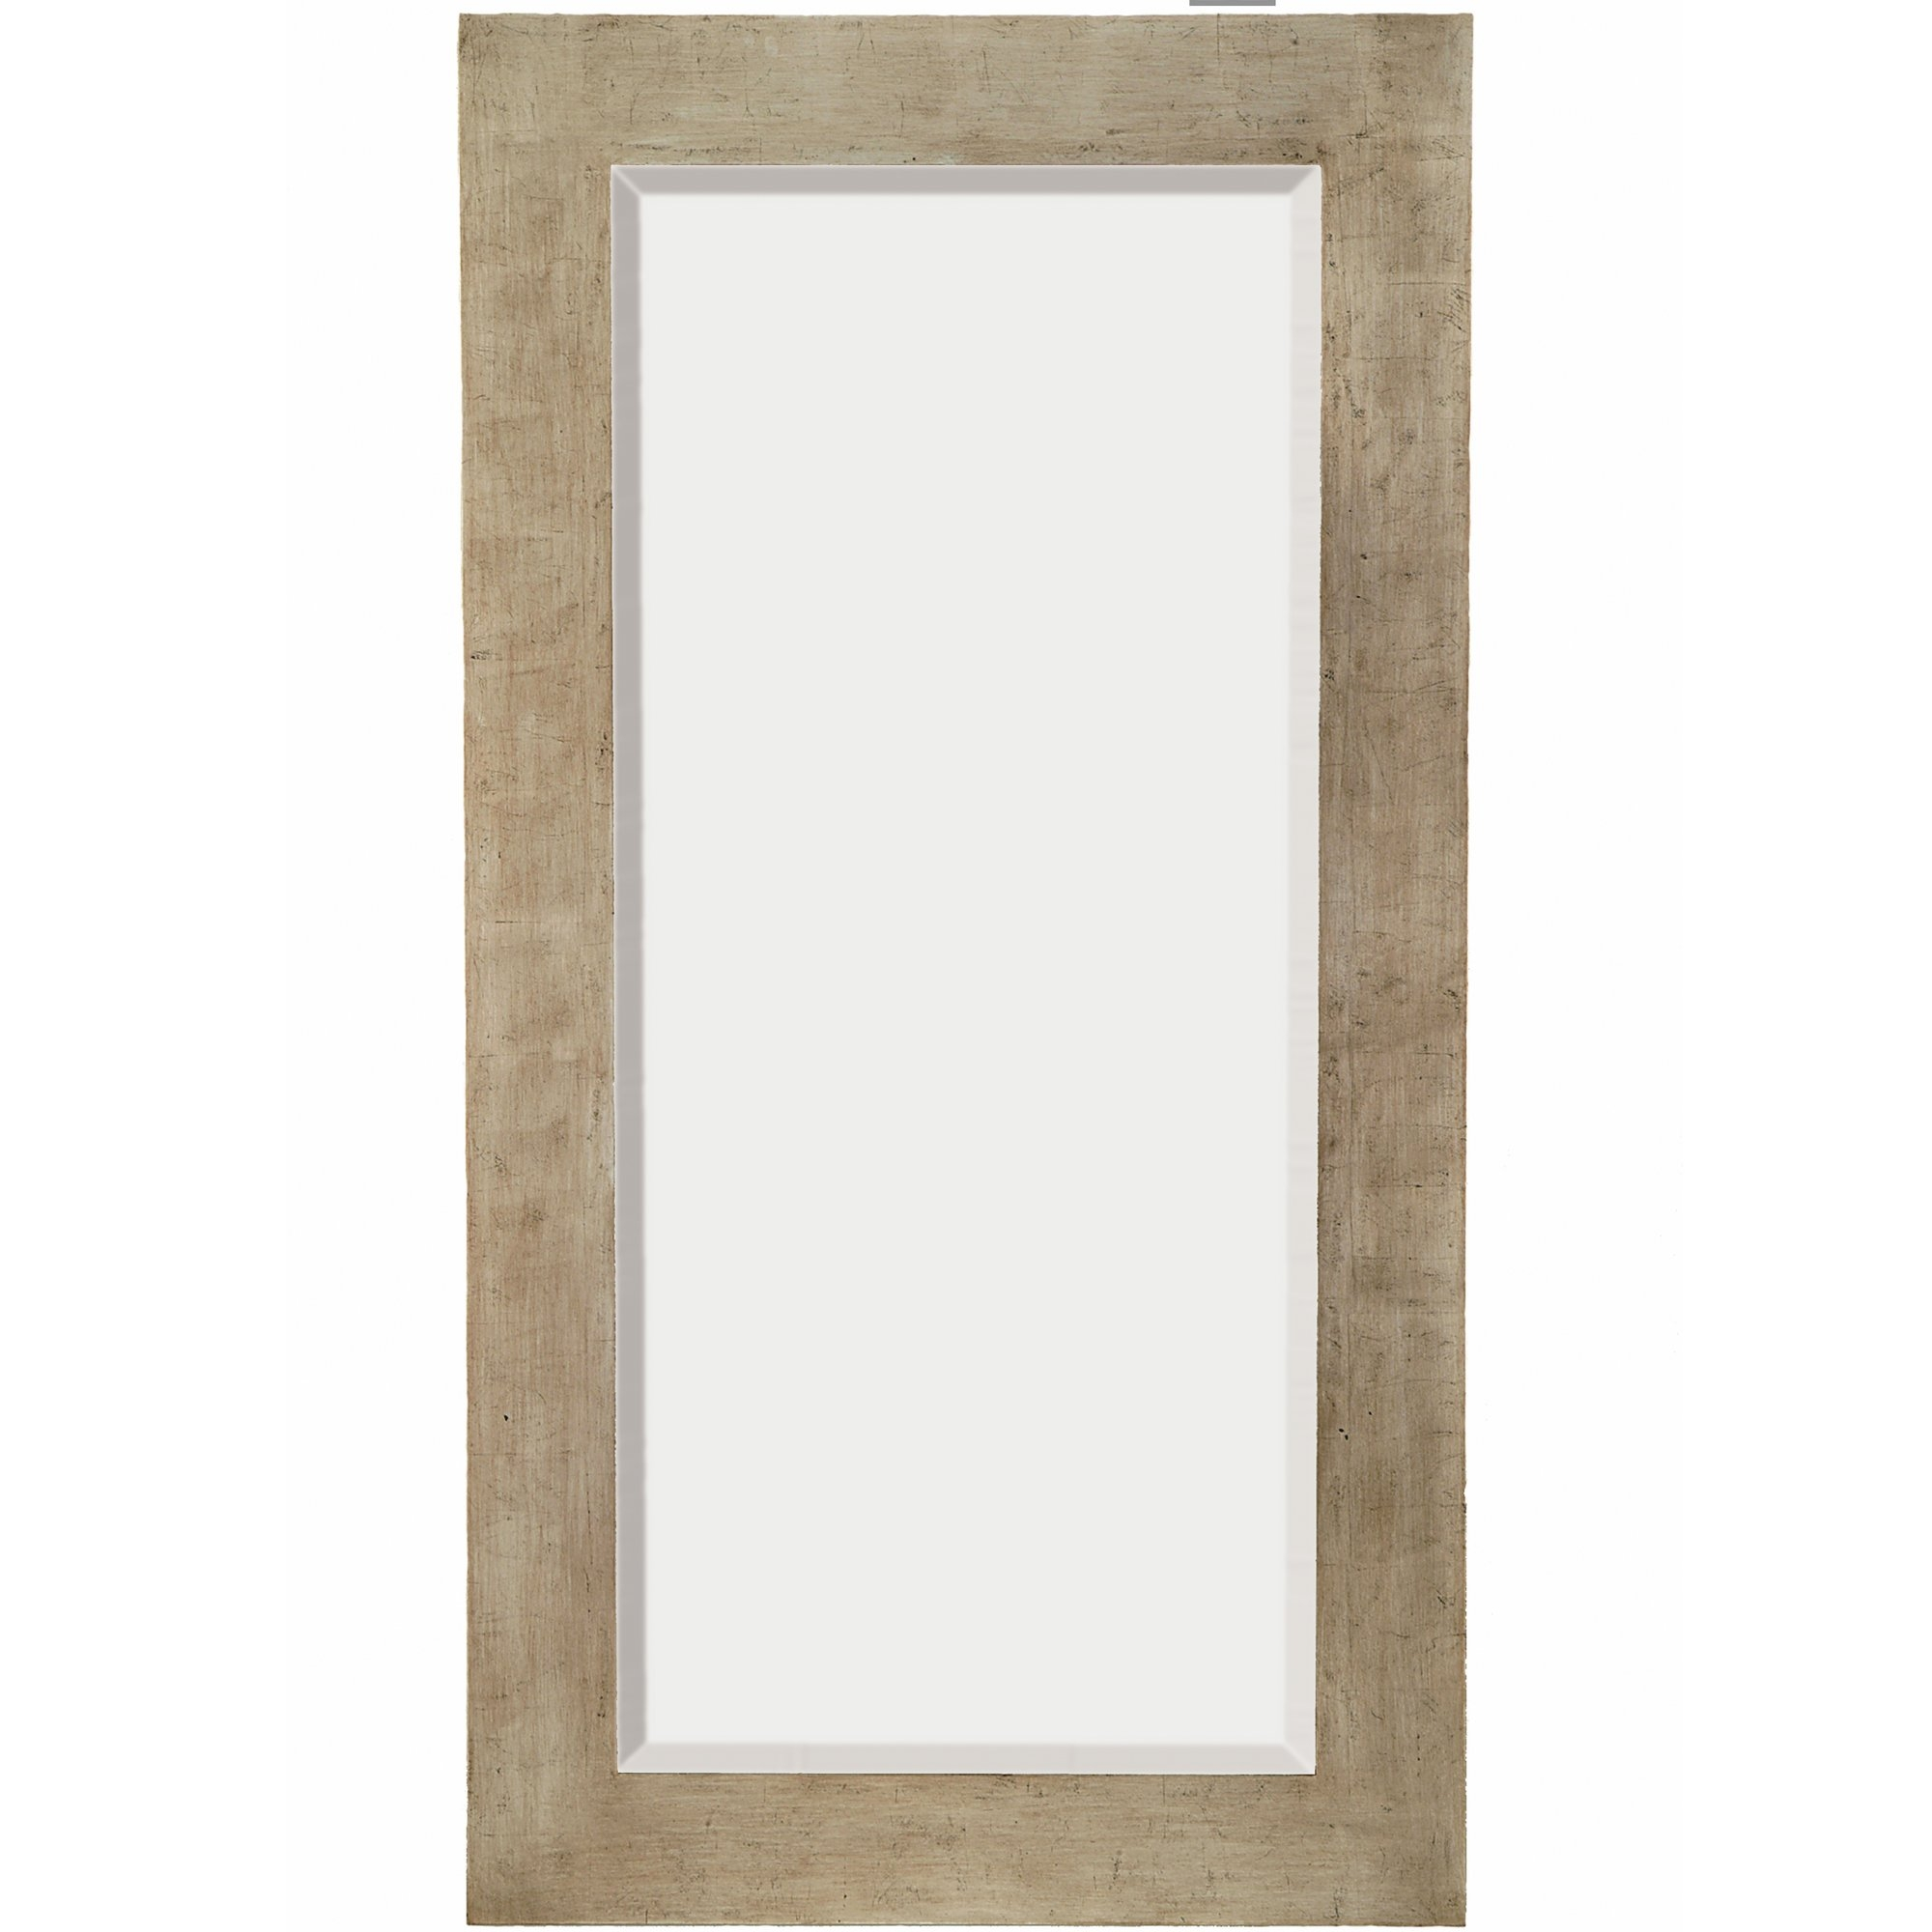 Majestic Mirror Tall Rectangular Silver Sleek Beveled Glass Framed For Tall Silver Mirror (Image 9 of 15)